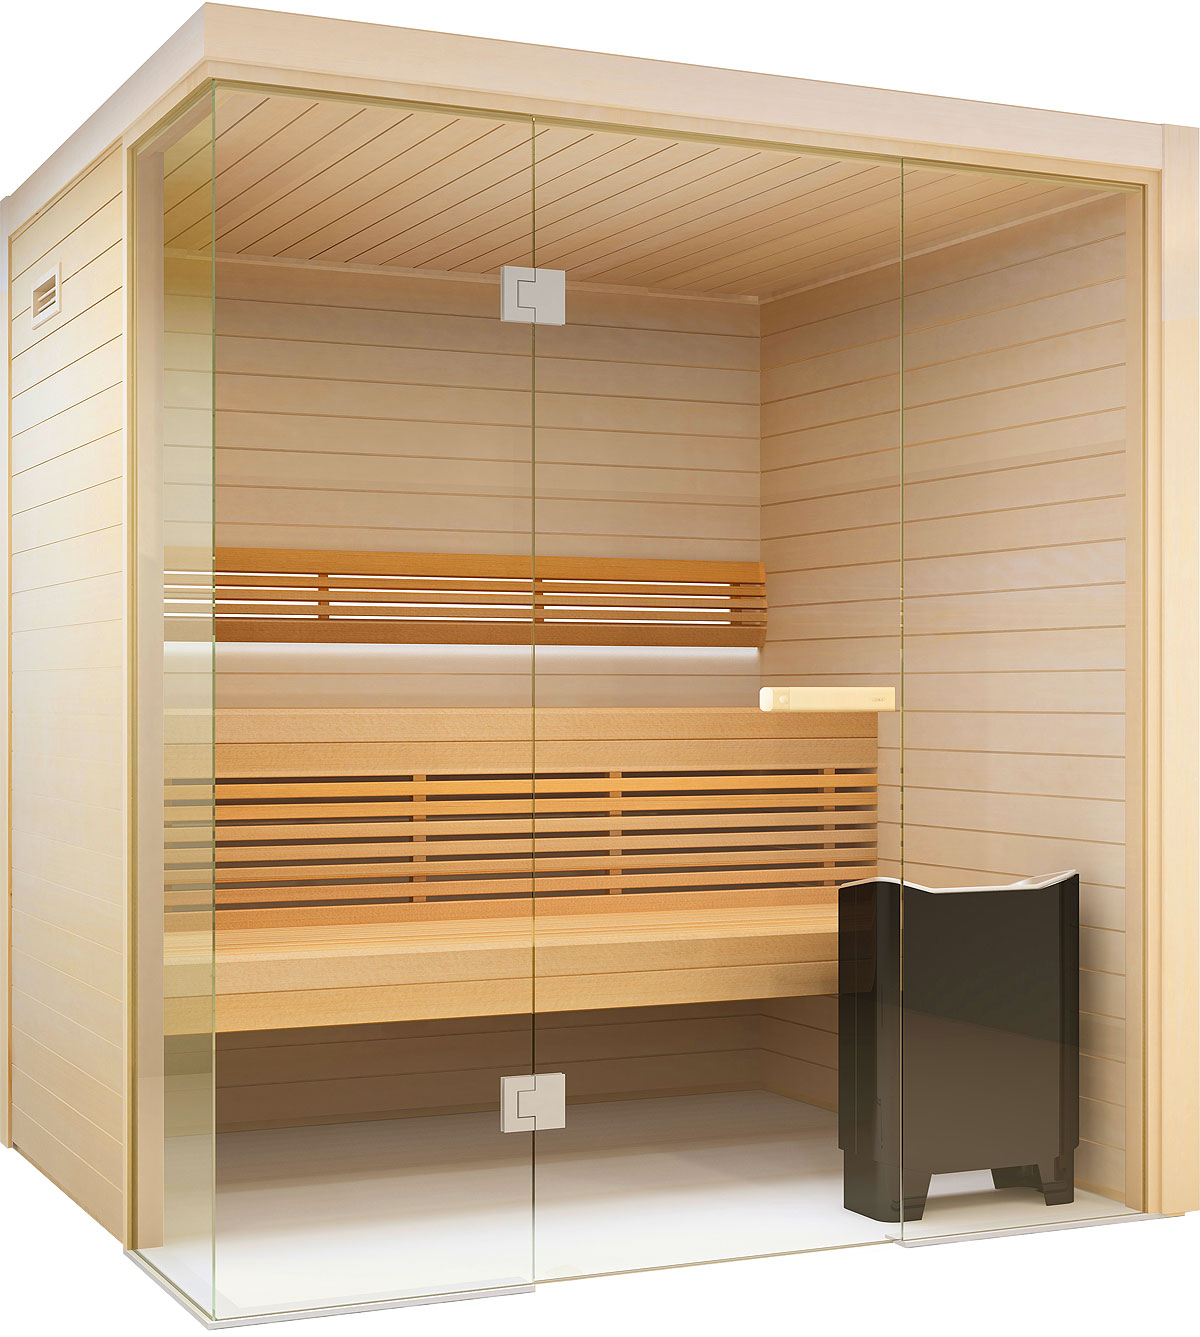 Build a home sauna with the TyloHelo Harmony kit